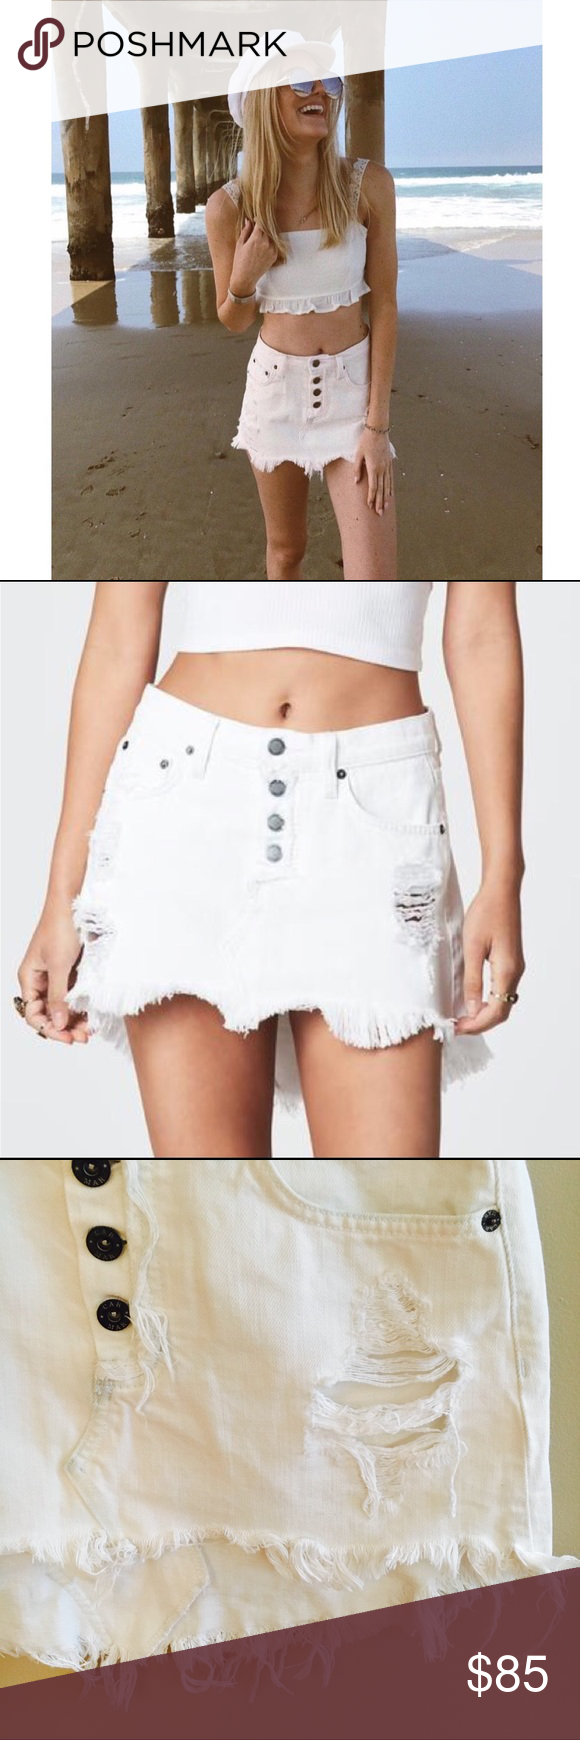 58edc063e3 LF Carmar White Distressed High Low Denim Skirt This little high waisted  skirt is so girly and flirty! Perfect for a day at the beach, festival  season, ...